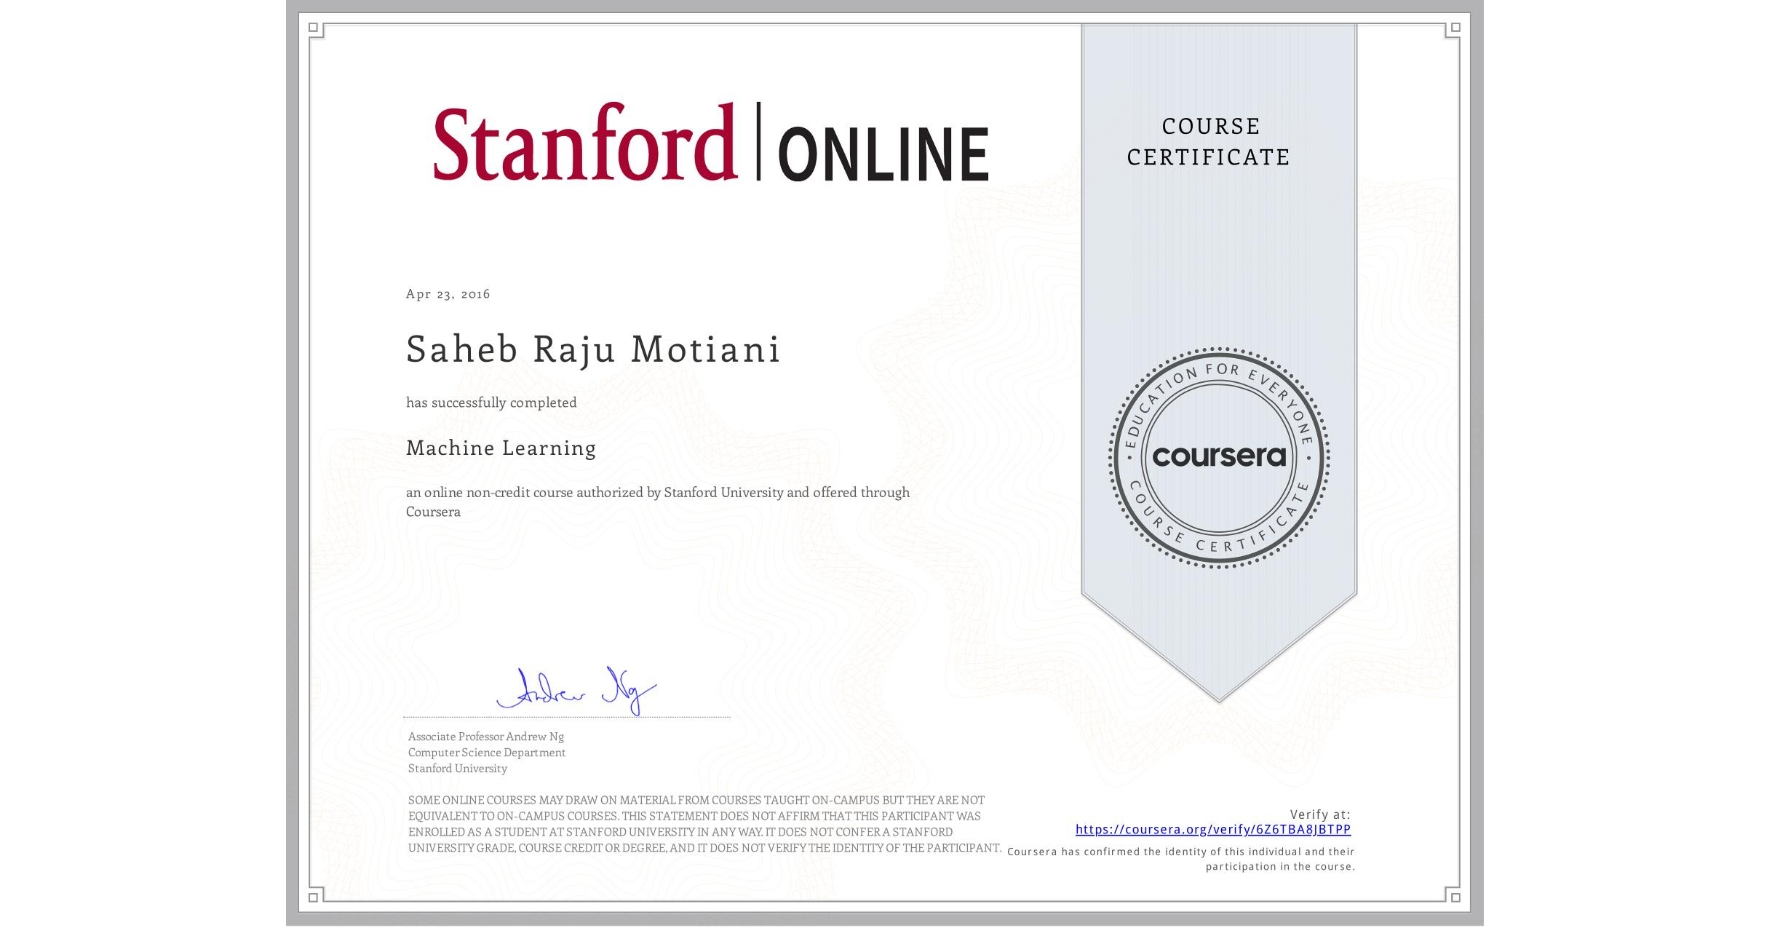 View certificate for Saheb Raju Motiani, Machine Learning, an online non-credit course authorized by Stanford University and offered through Coursera